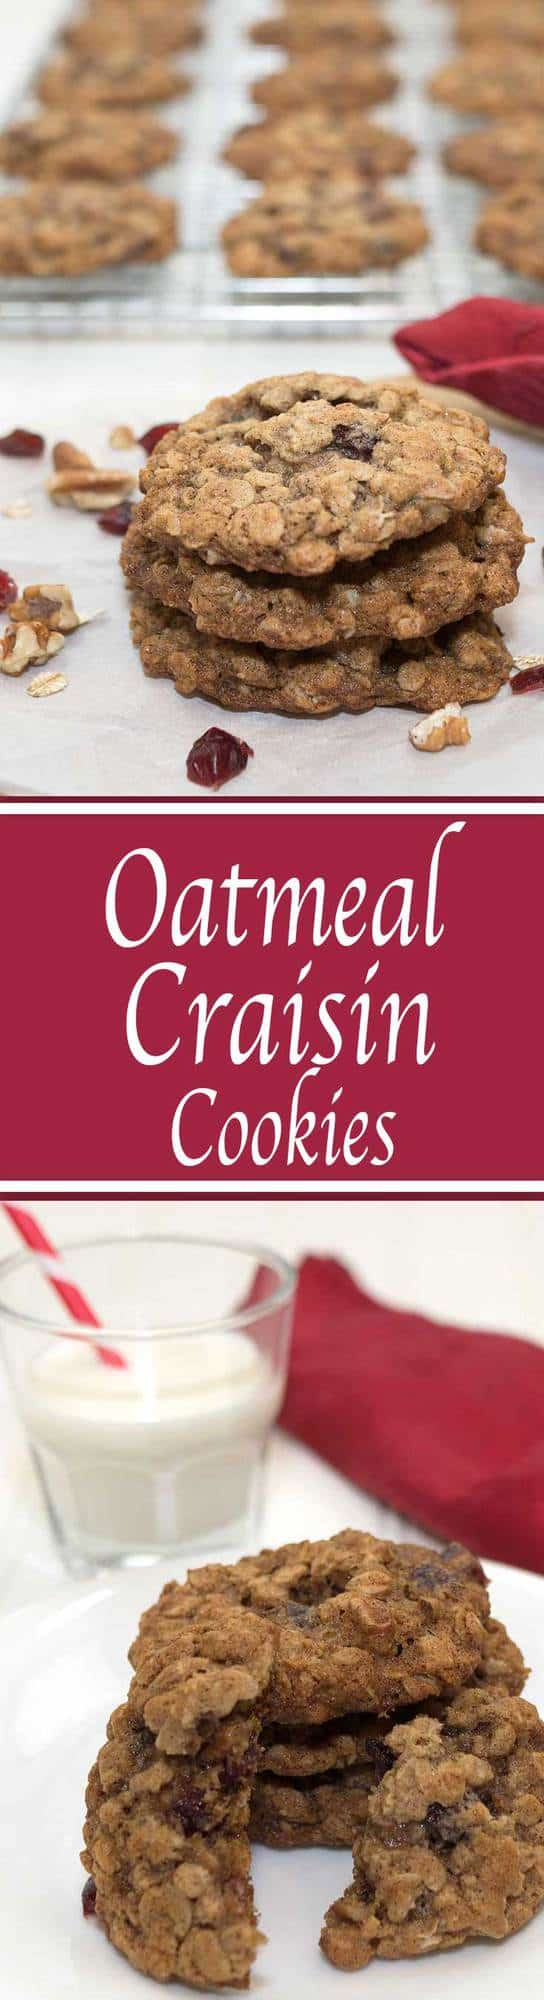 These Oatmeal Craisin Cookies are a delicious twist on an old favorite. They're chocked full of Craisins and toasted pecans, not to mention the healthy oats.